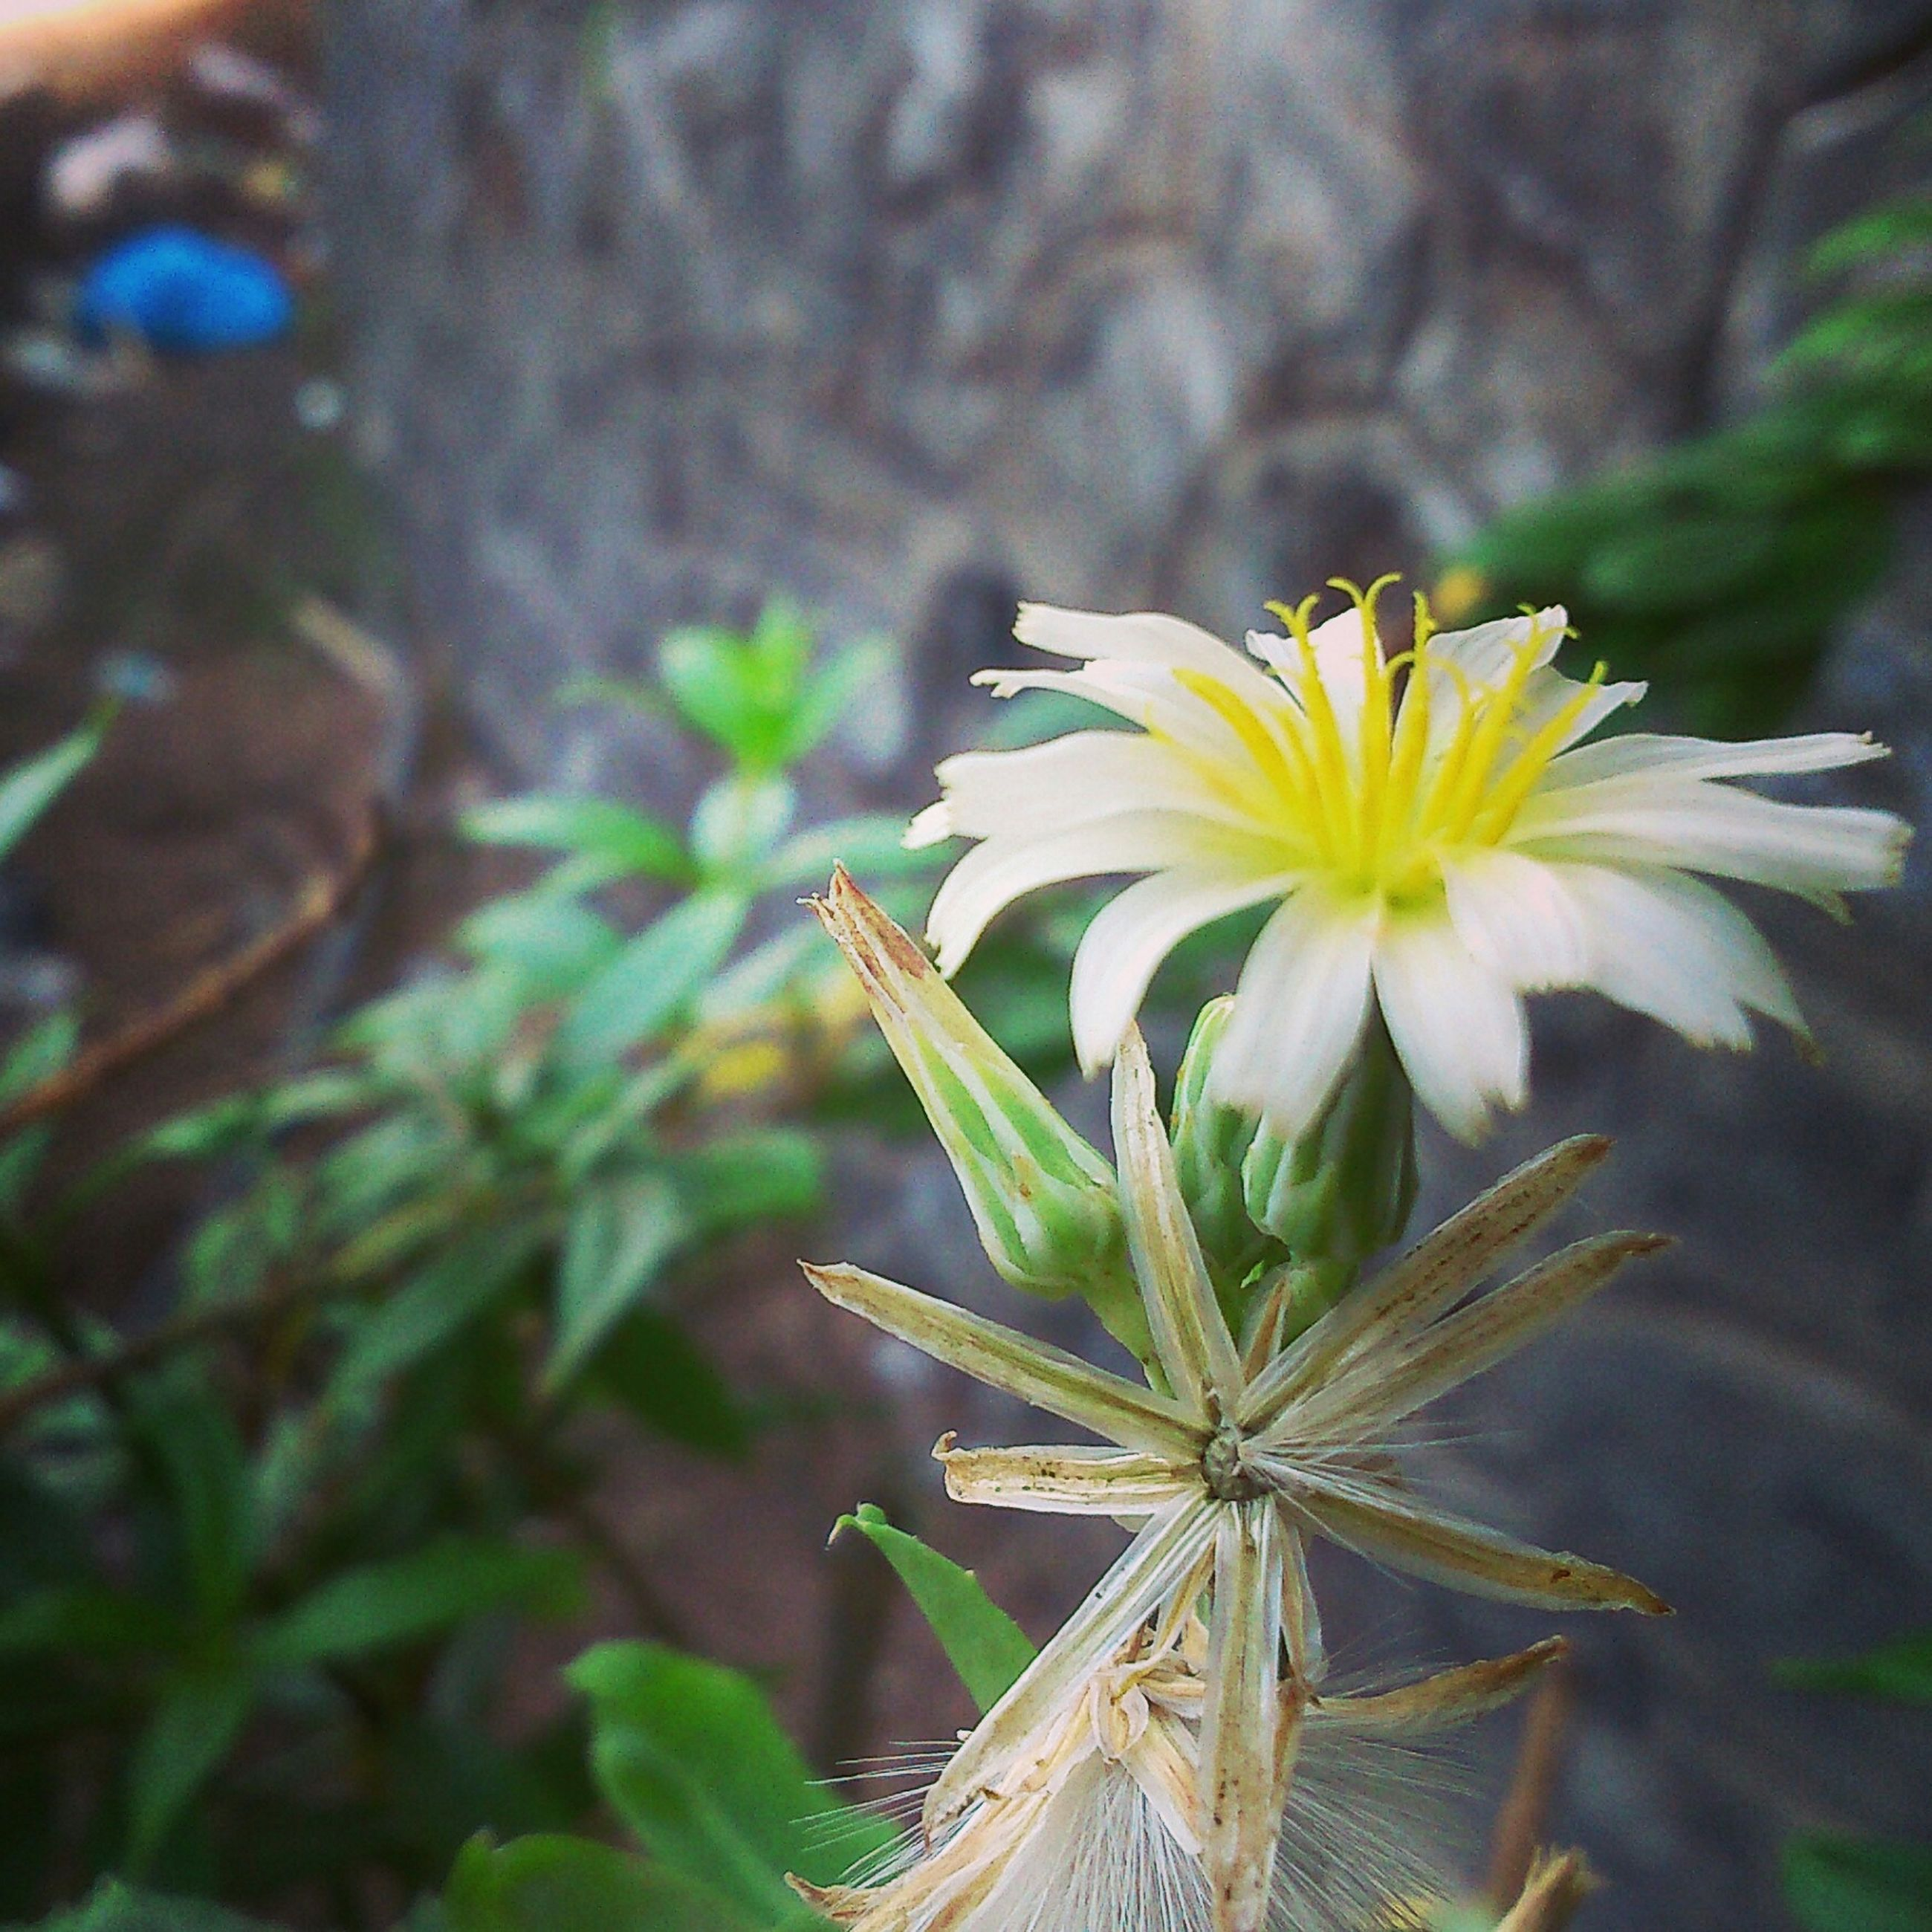 flower, petal, freshness, fragility, flower head, focus on foreground, growth, close-up, beauty in nature, pollen, plant, blooming, yellow, nature, single flower, in bloom, white color, stem, day, outdoors